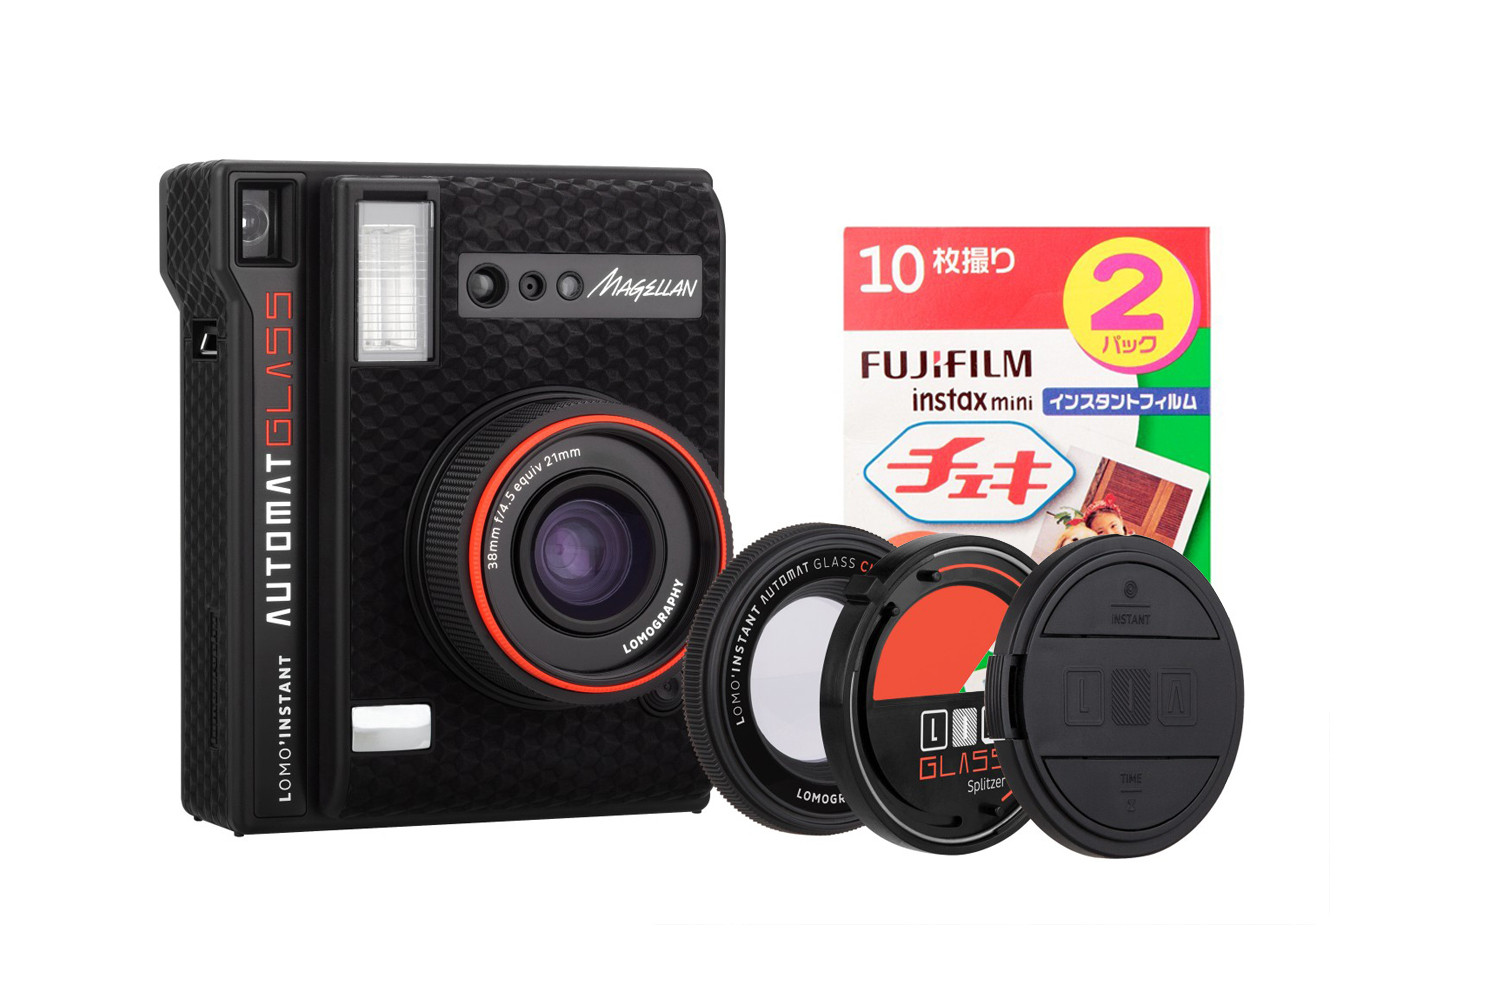 Lomo'Instant Automat Glass (Magellan Edition) + Fujifilm Instax Film Double Pack Bundle